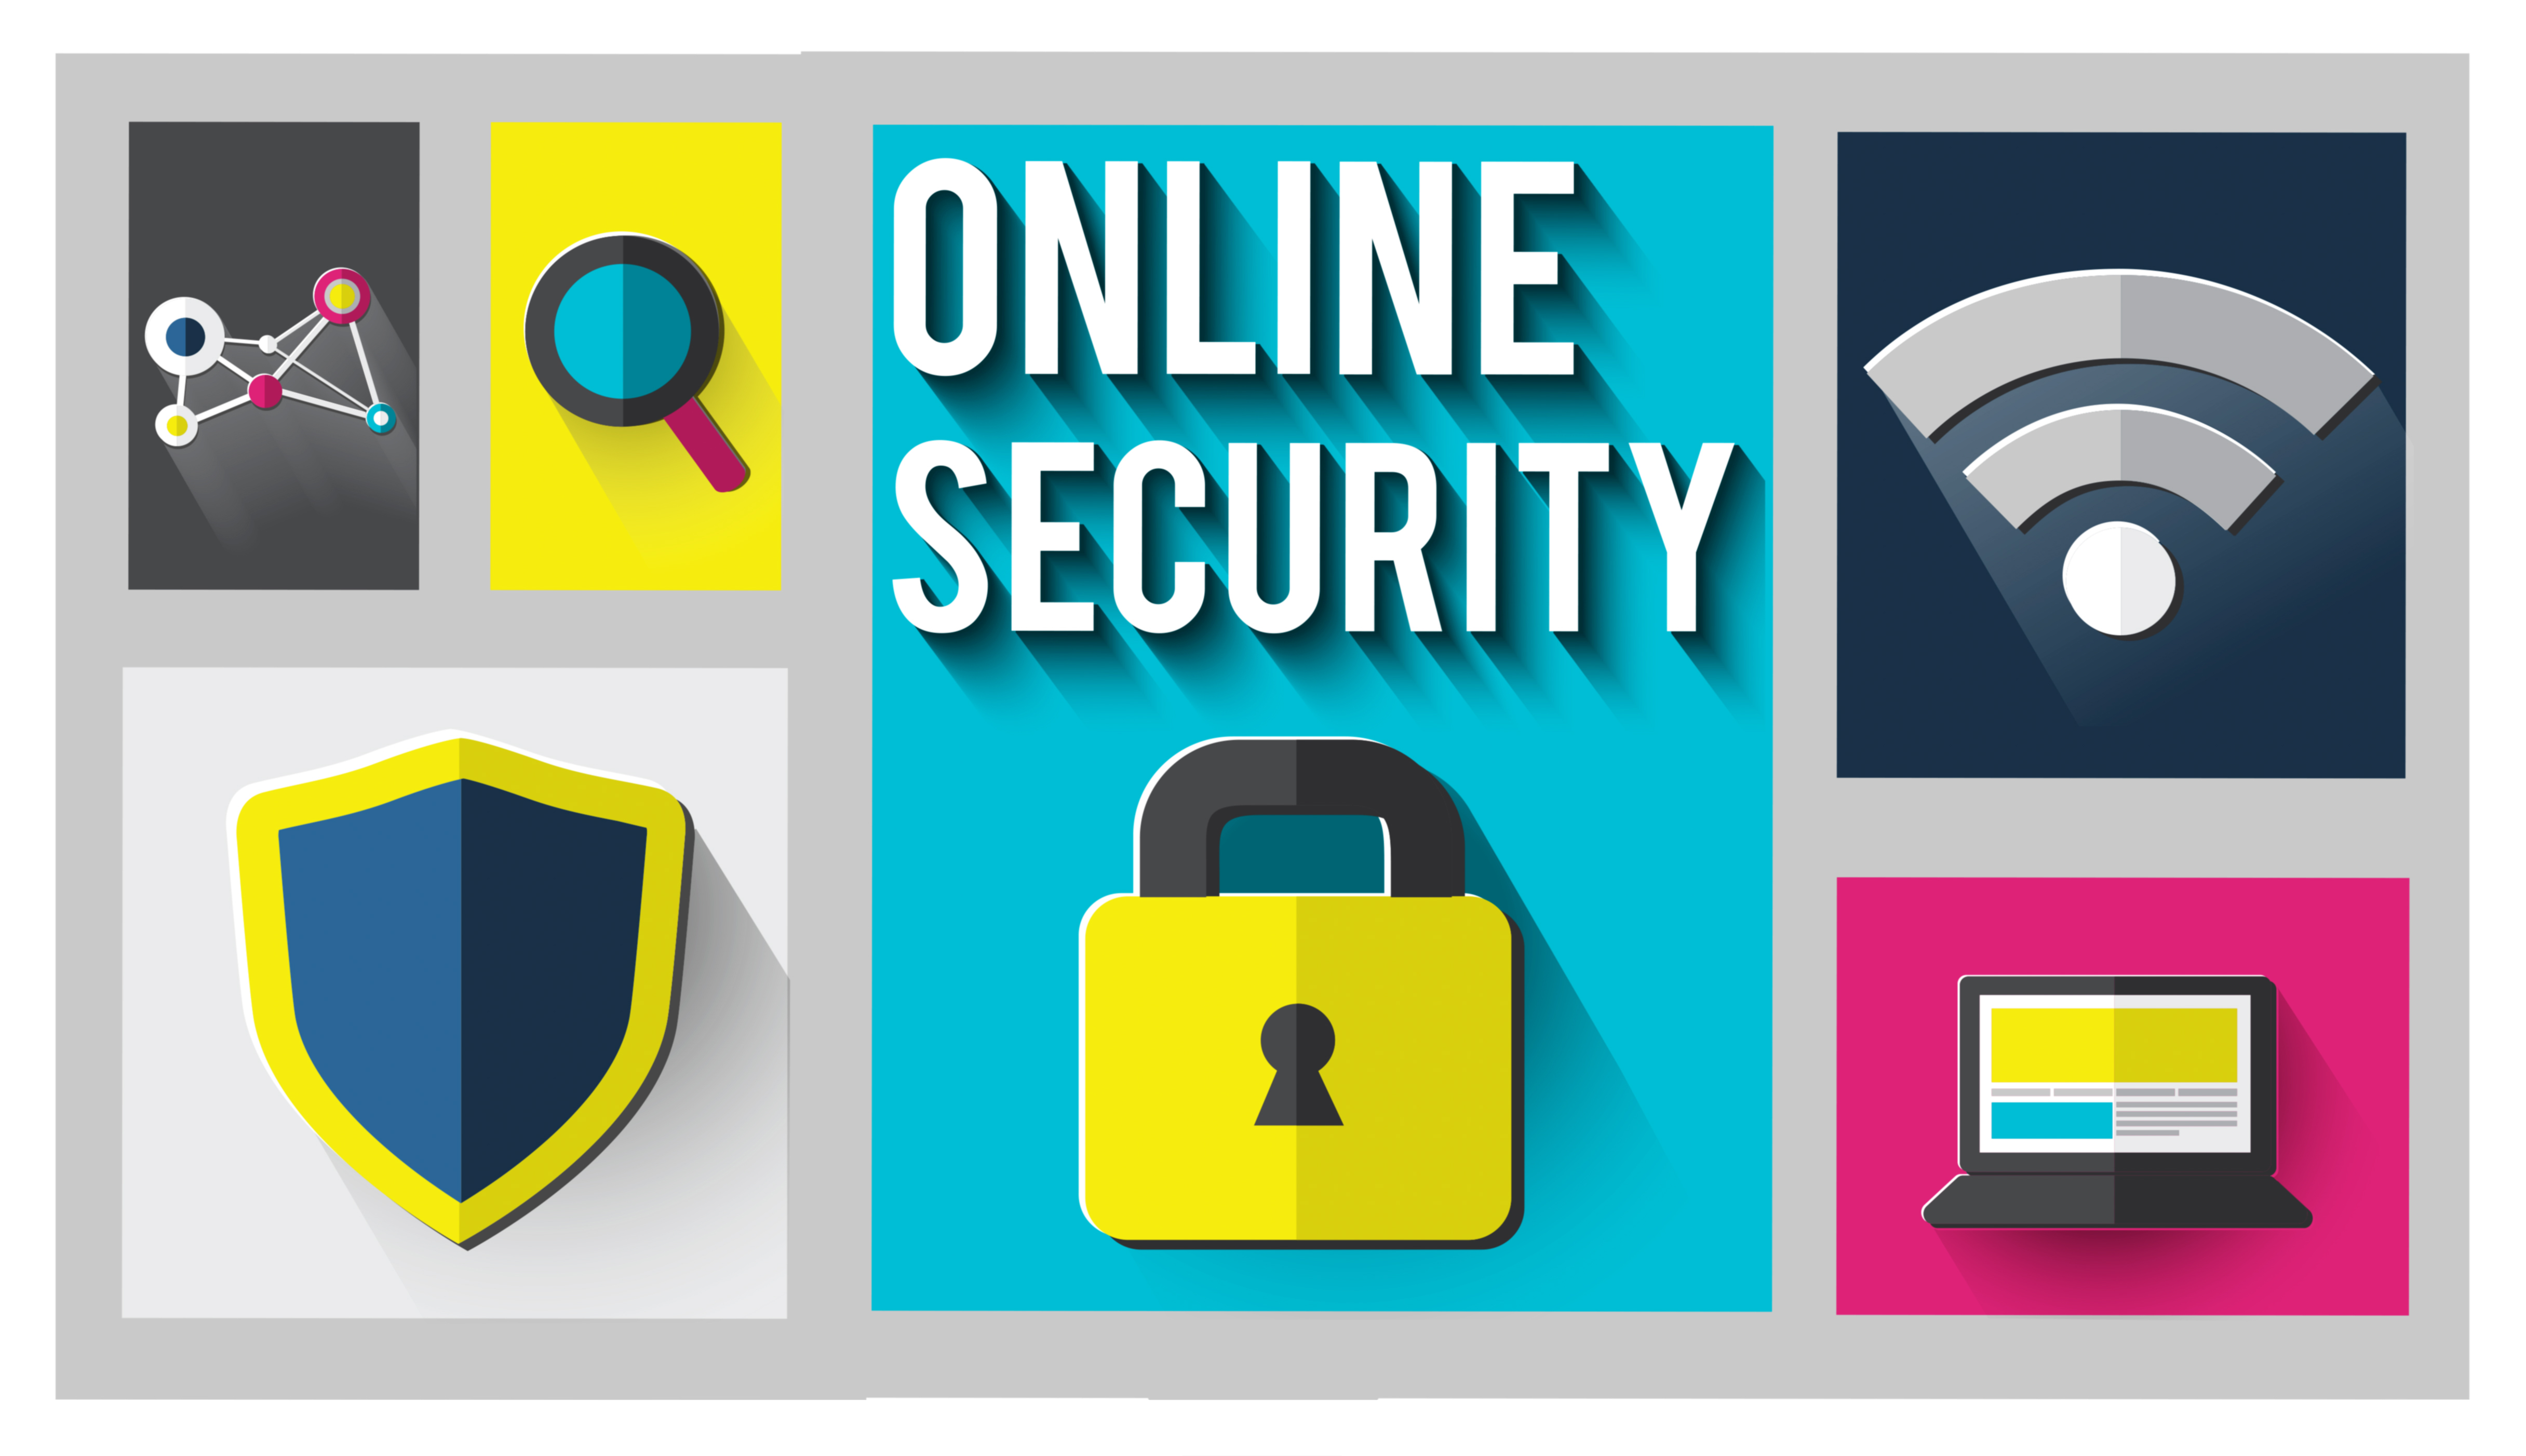 Phishing and cyber security